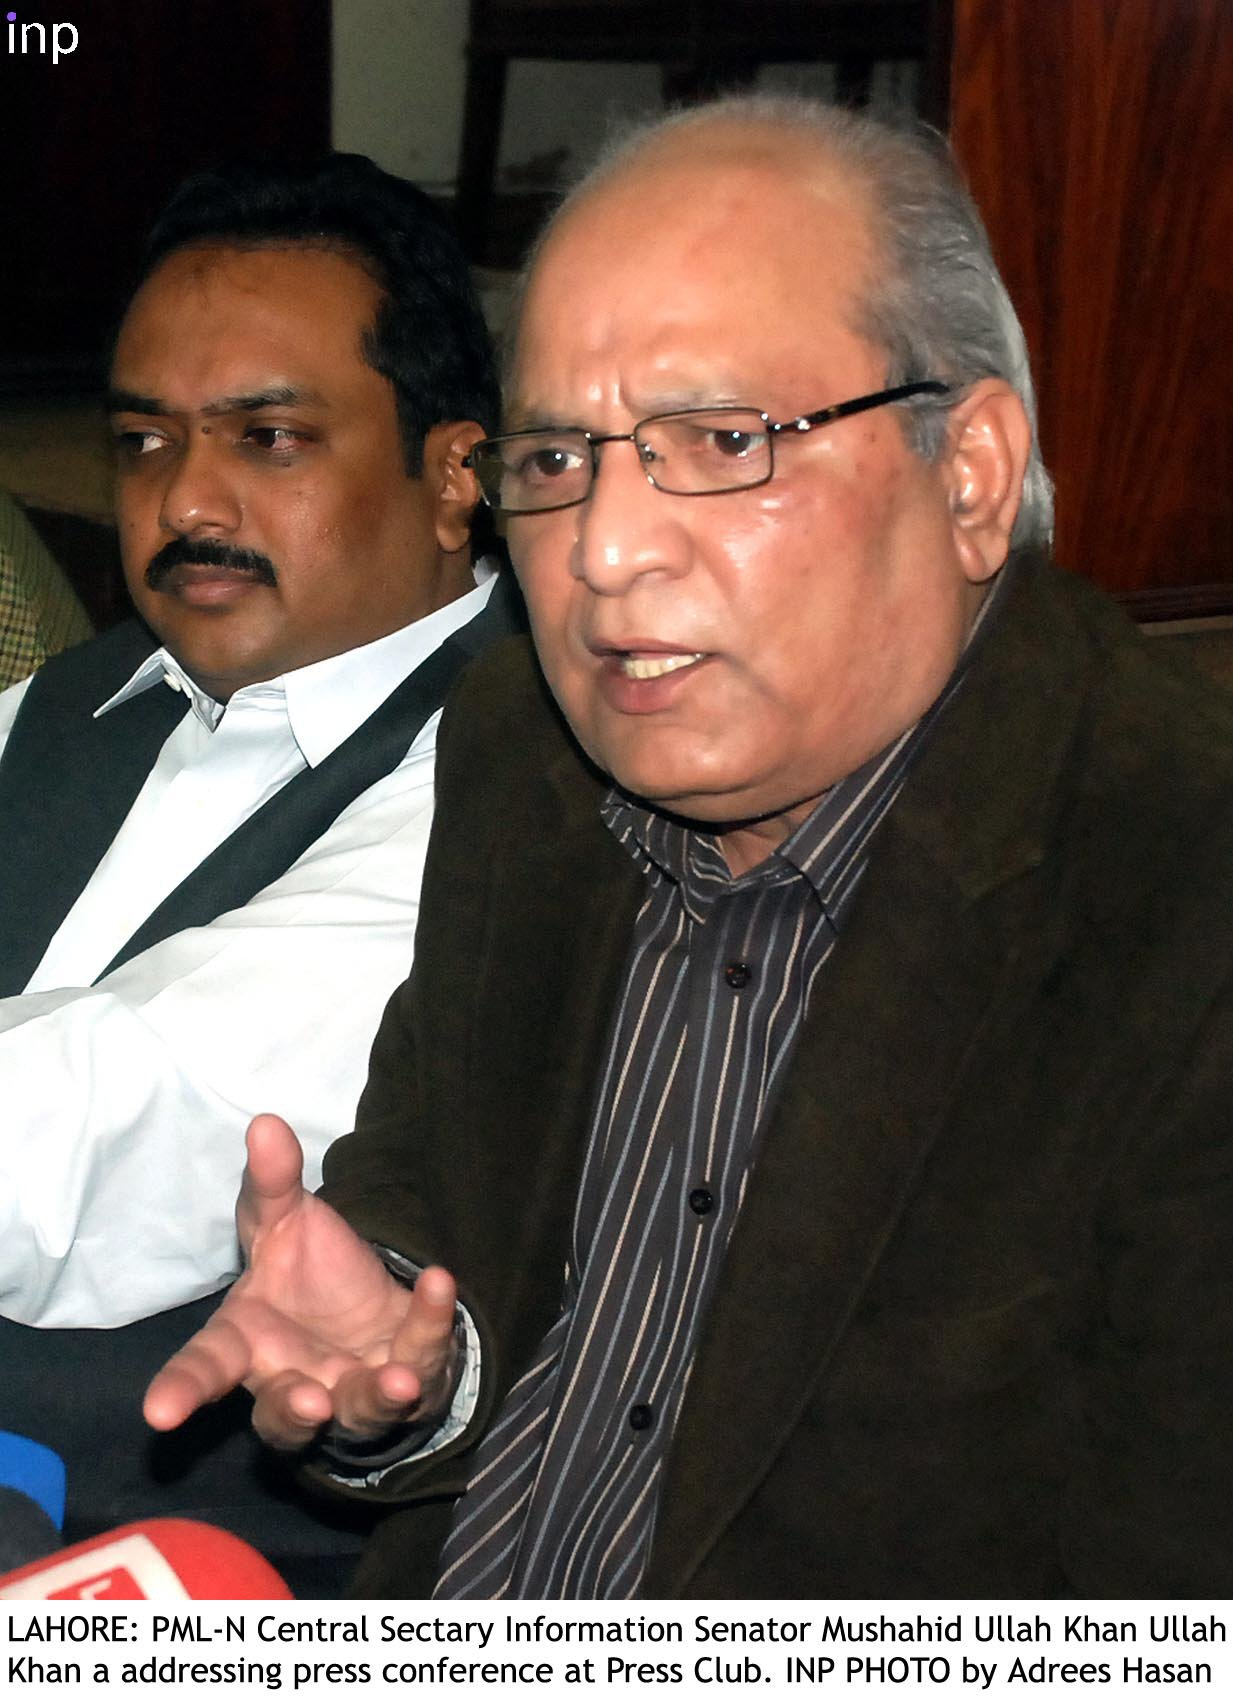 mushahidullah-khan-photo-inp-3-2-2-2-3